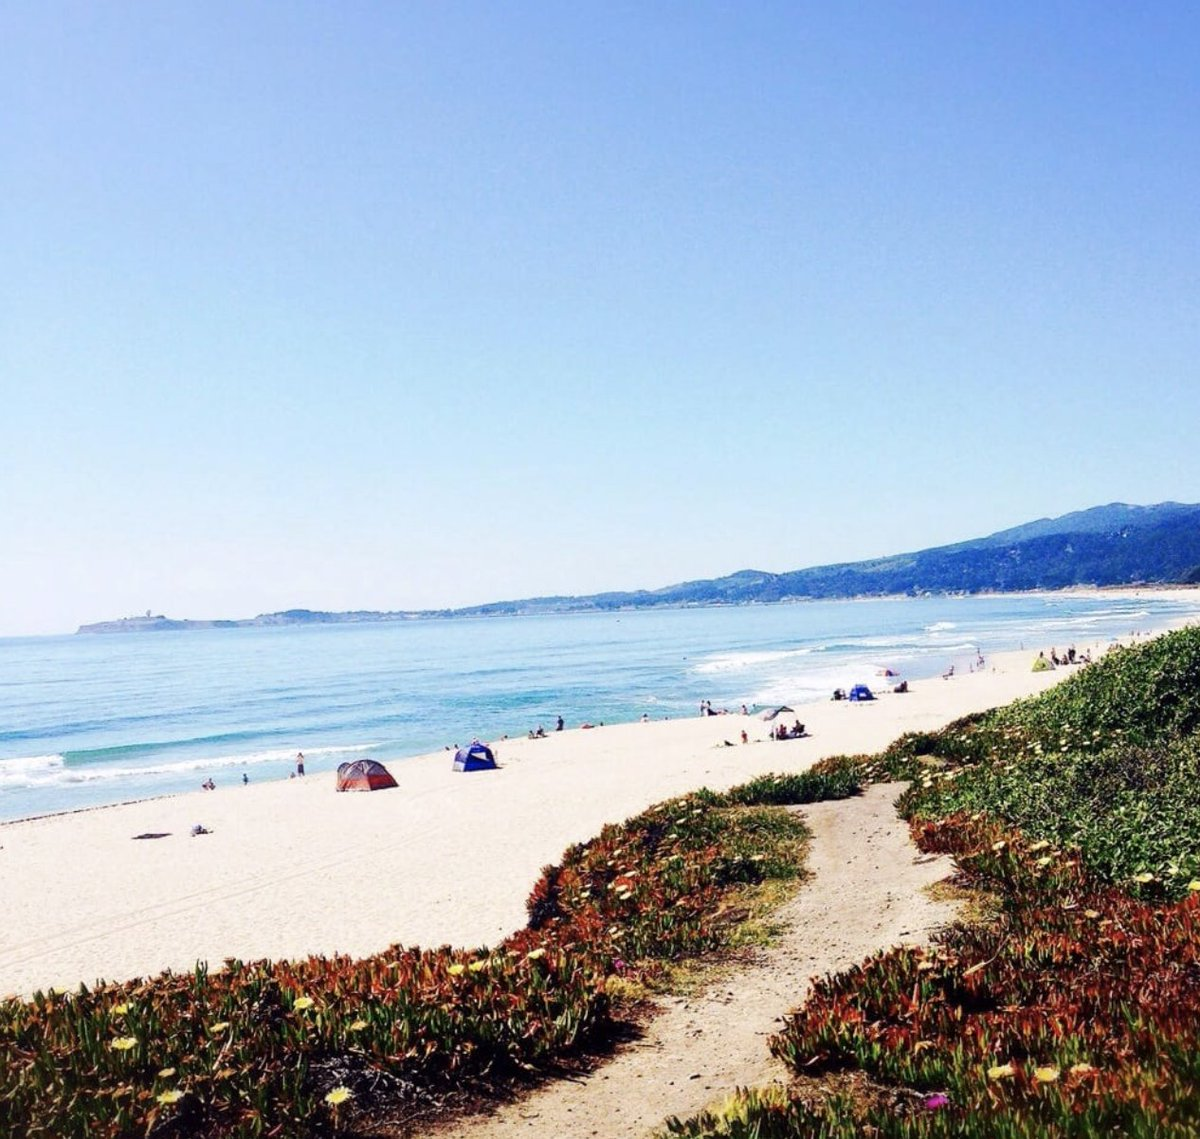 See if your favorite beach made the list -  https://www.countryliving.com/life/travel/g20049687/best-beach-camping- california/ …pic.twitter.com/9PSFi7nHPI